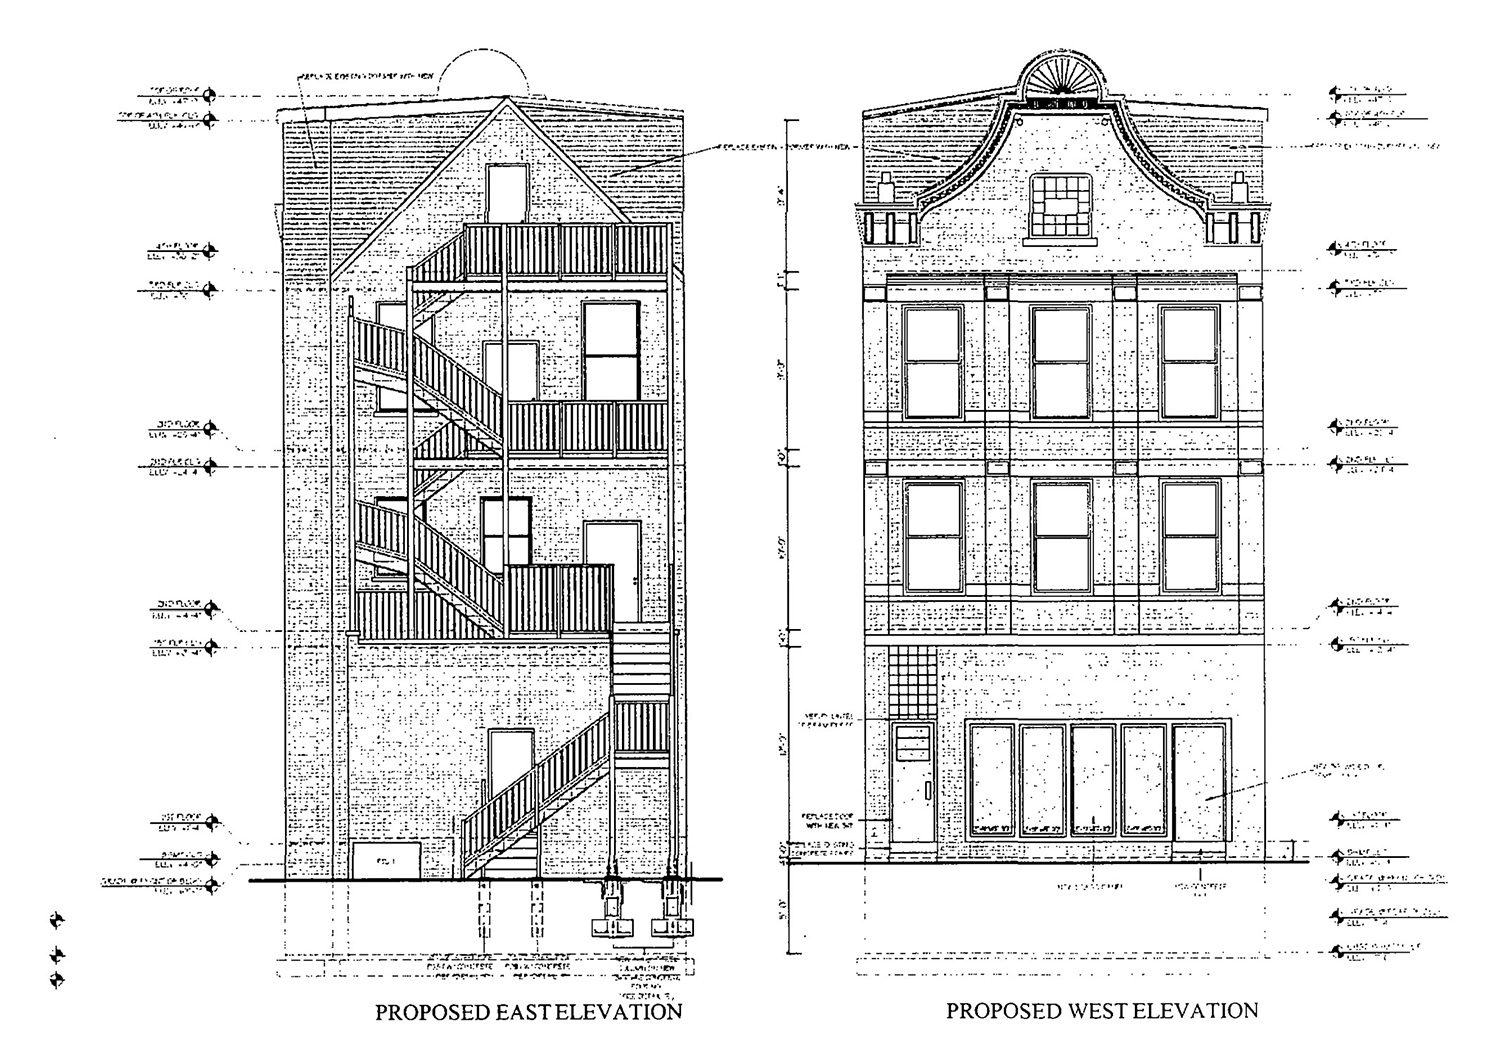 East and West Elevations for 3315 S Morgan Street. Drawings by KennedyMann